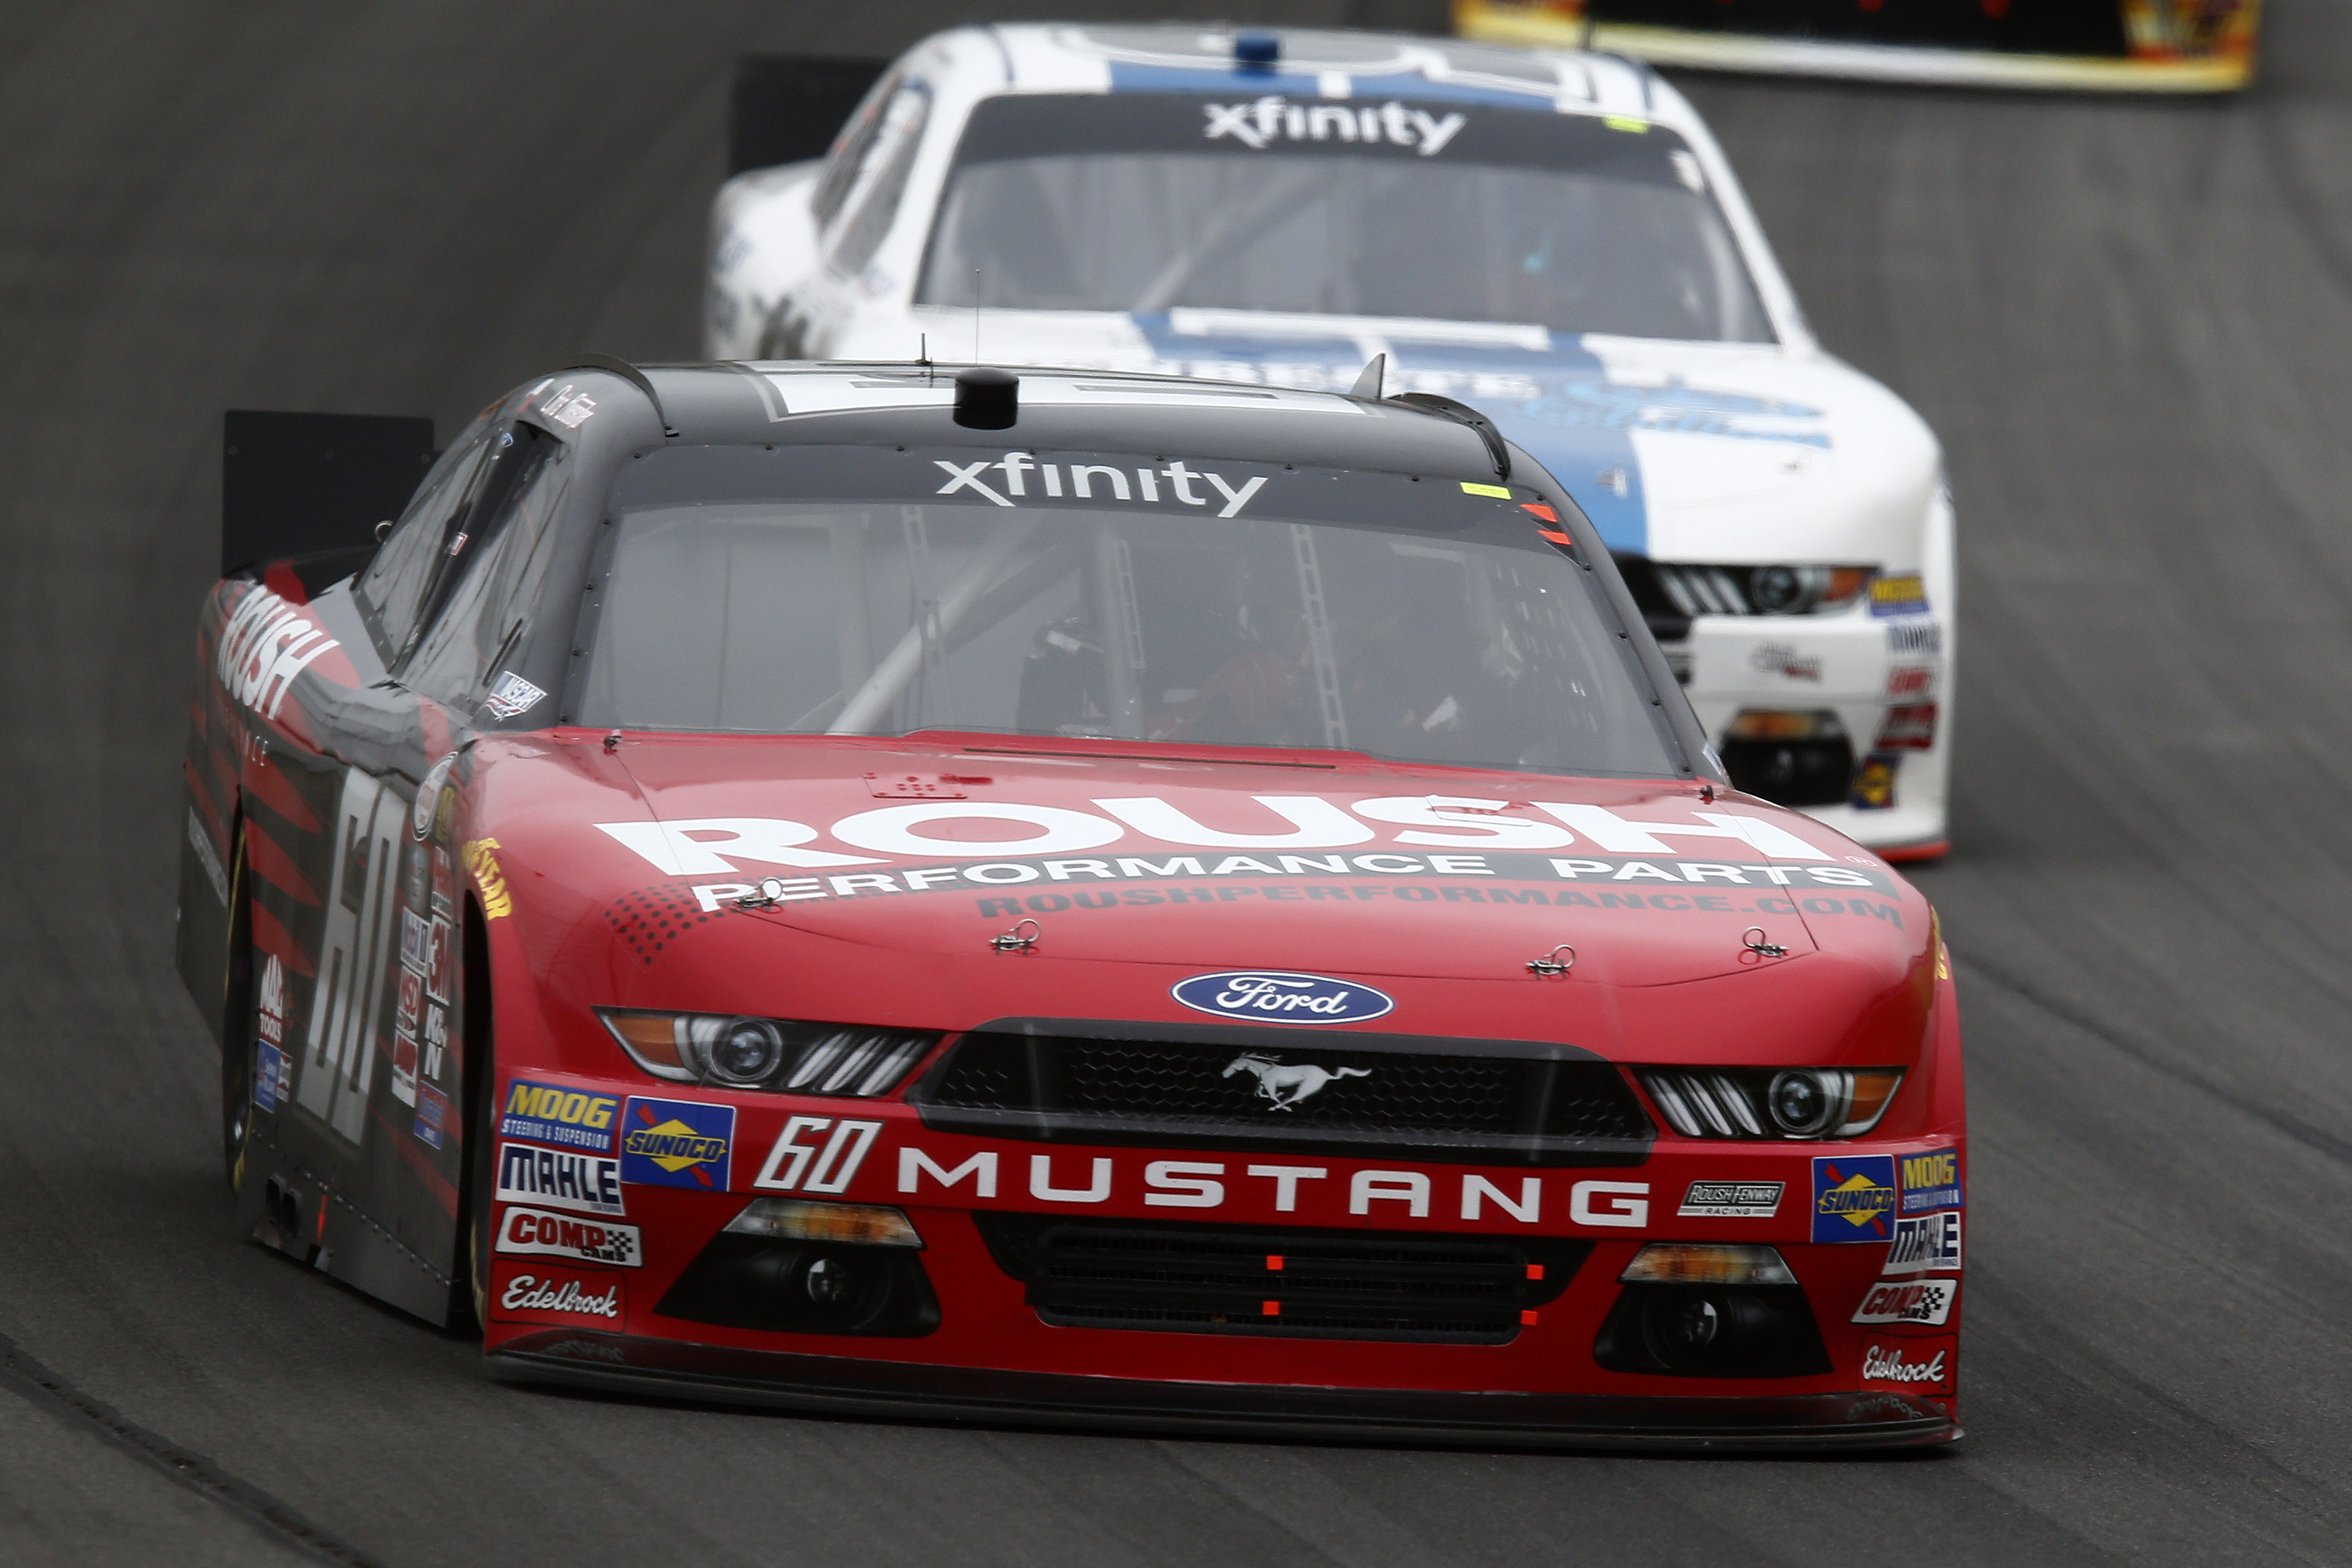 NASCAR XFINITY Series Great Clips 250 Benefiting Paralyzed Veterans of America